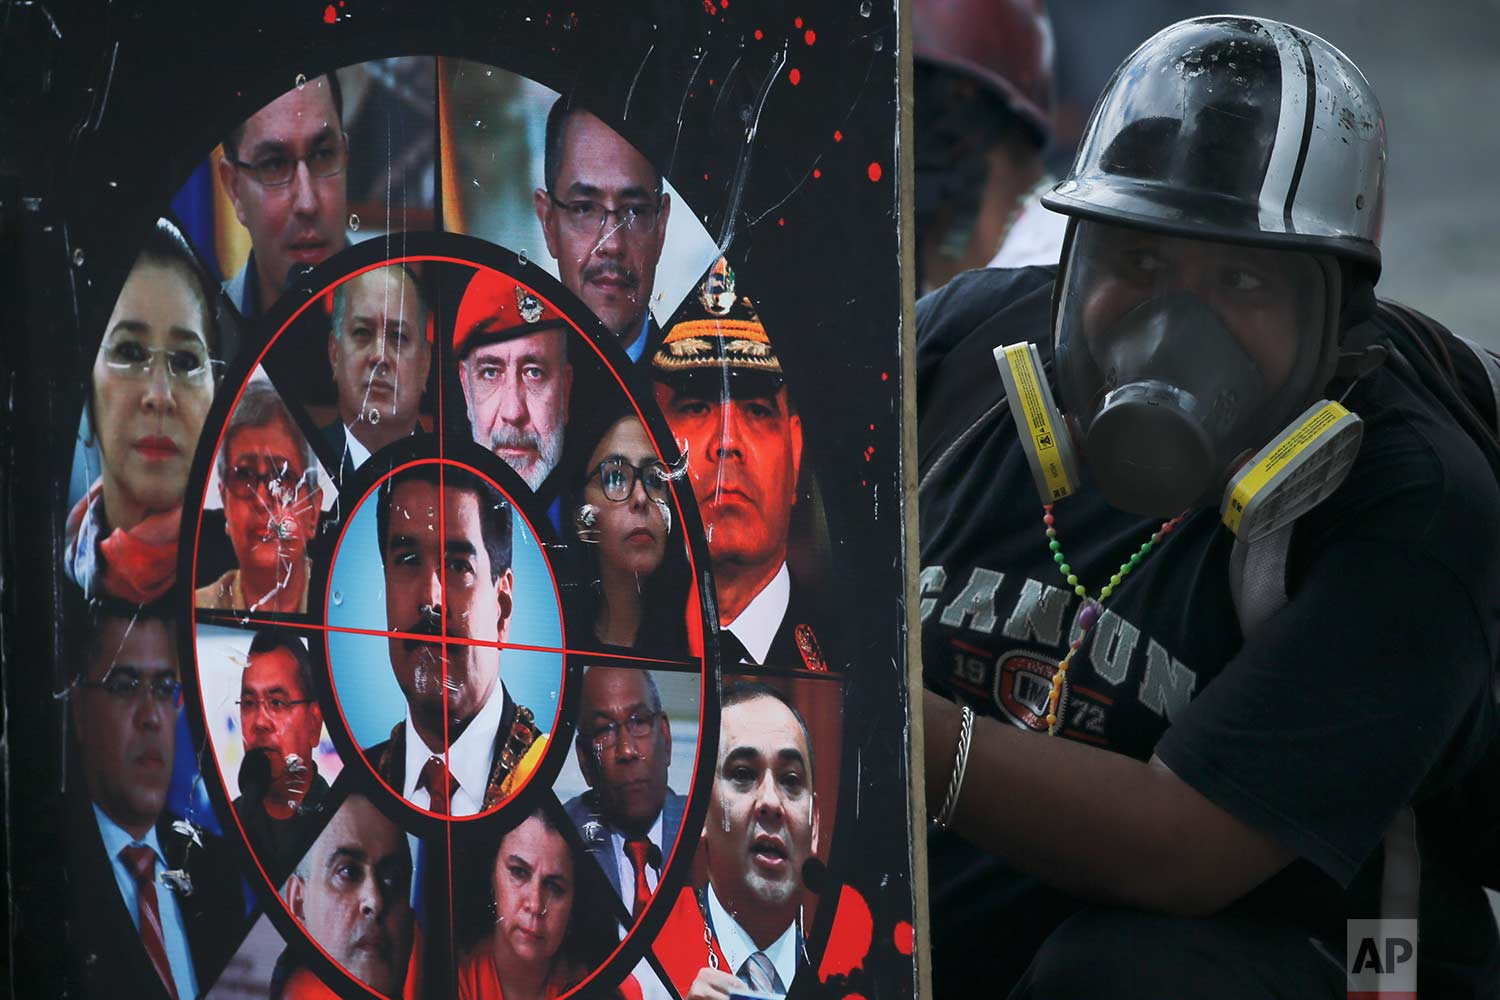 An anti-government protester holds a homemade shield brandished with photos of President Nicolas Maduro, government officials and a gun sight, during clashes with security forces blocking a march to the Supreme Court, in Caracas, Venezuela, Saturday, July 22, 2017. (AP Photo/Fernando Llano)